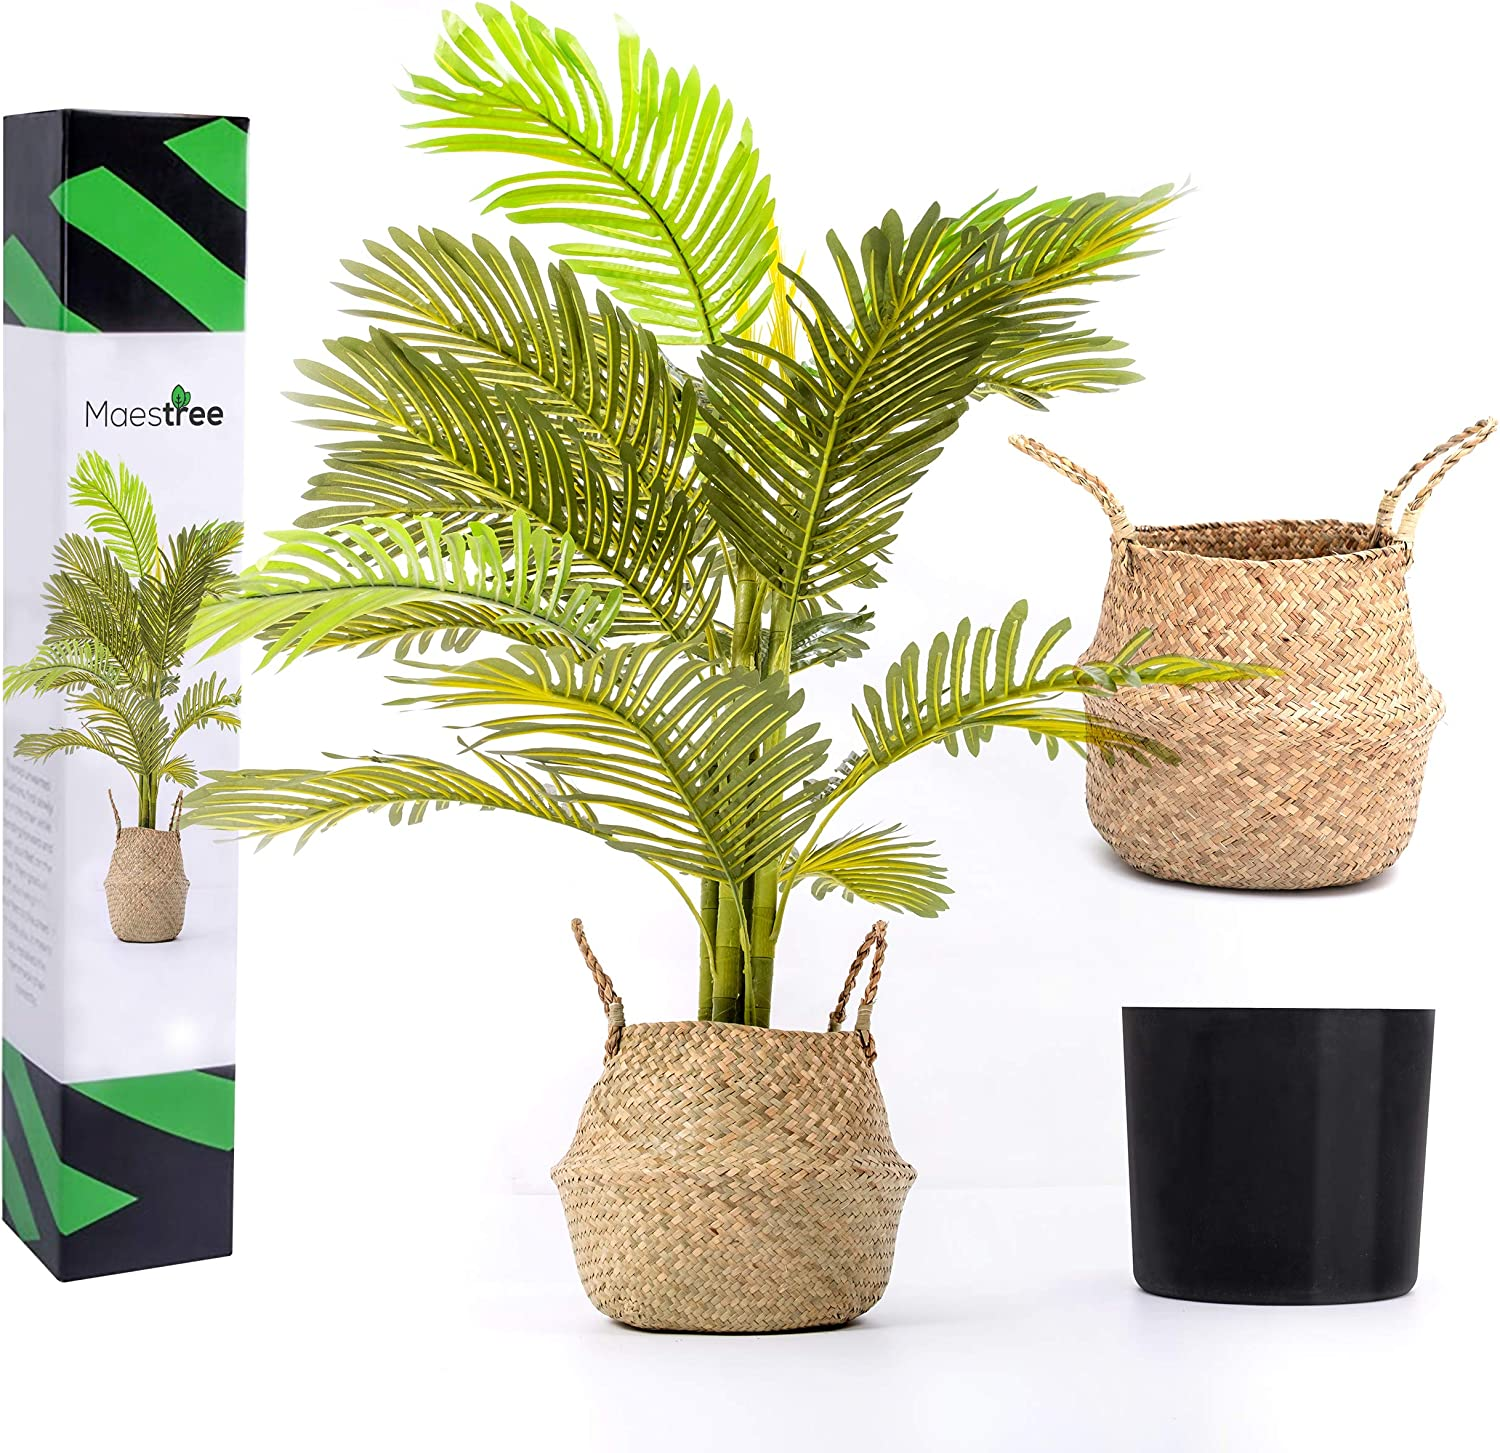 Maestree Faux Palm Tree Artificial Plant   4 Feet Tall Fake Plant with Adjustable Foliage   Fake Tree for Outdoor and Indoor Plants Decor at Home or Office   Seagrass Basket Included